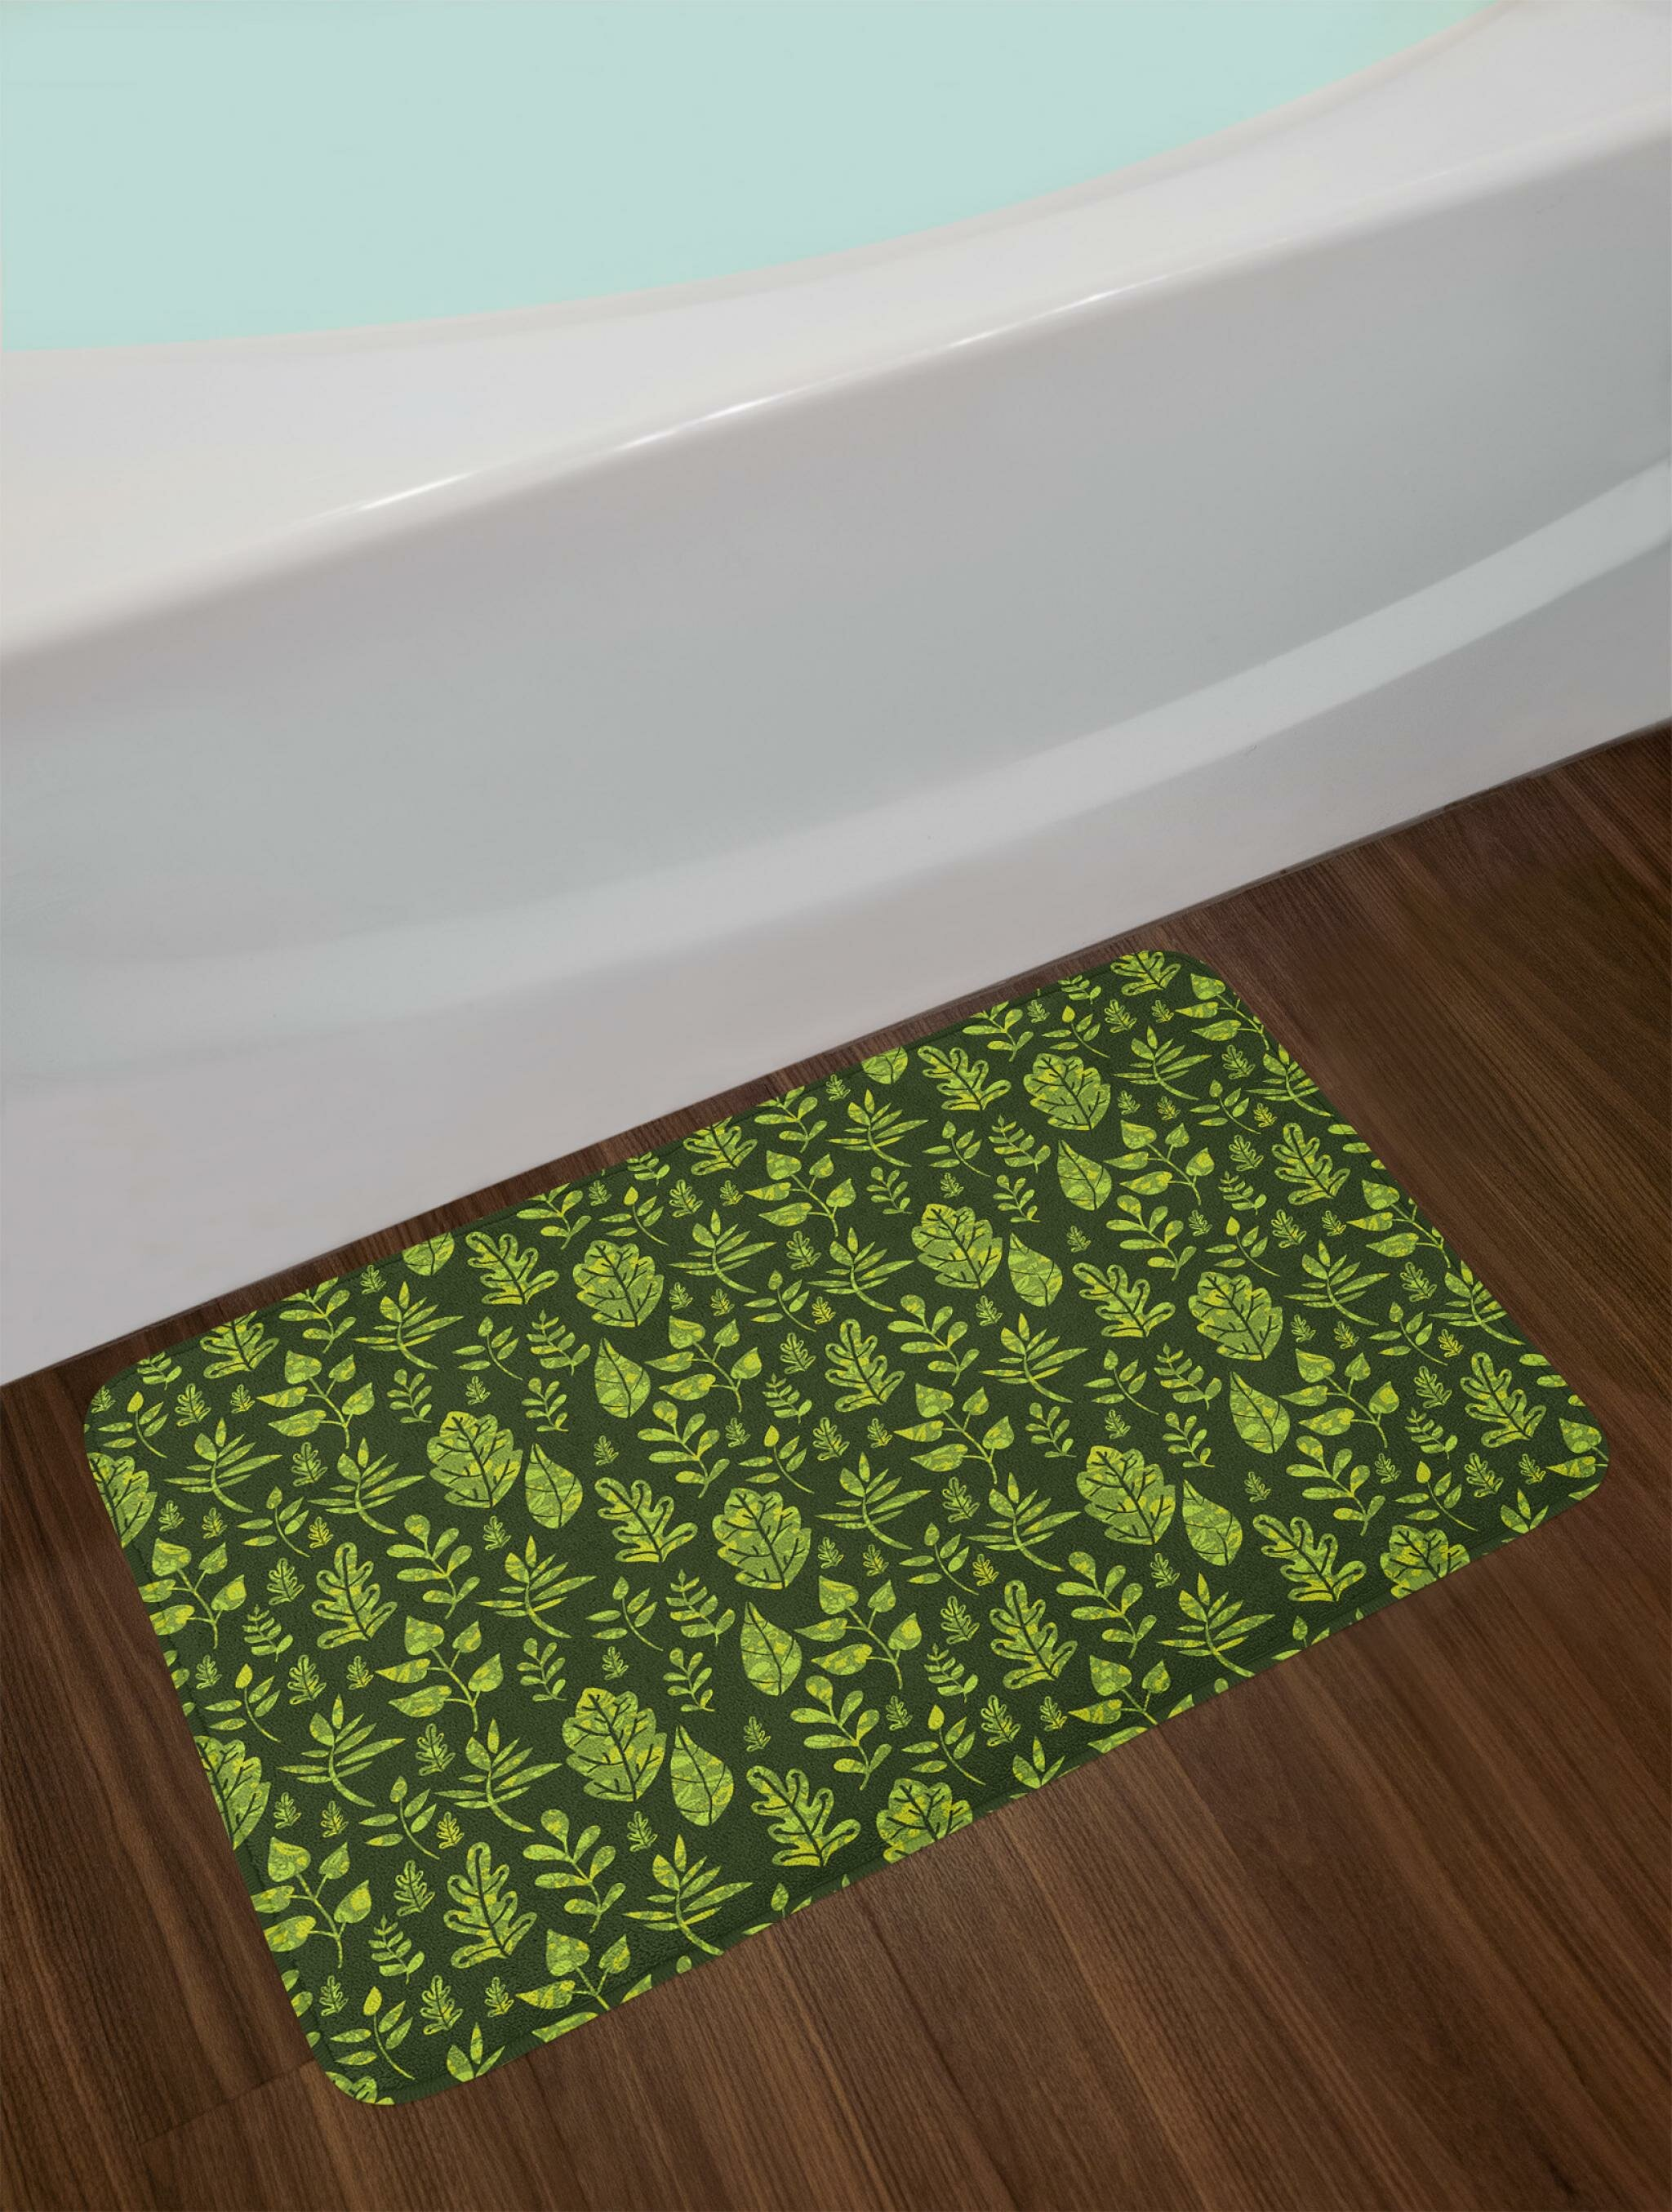 Patterned Green Leaves Nature Inspired Composition Fresh Trees Woodland Bath Rug